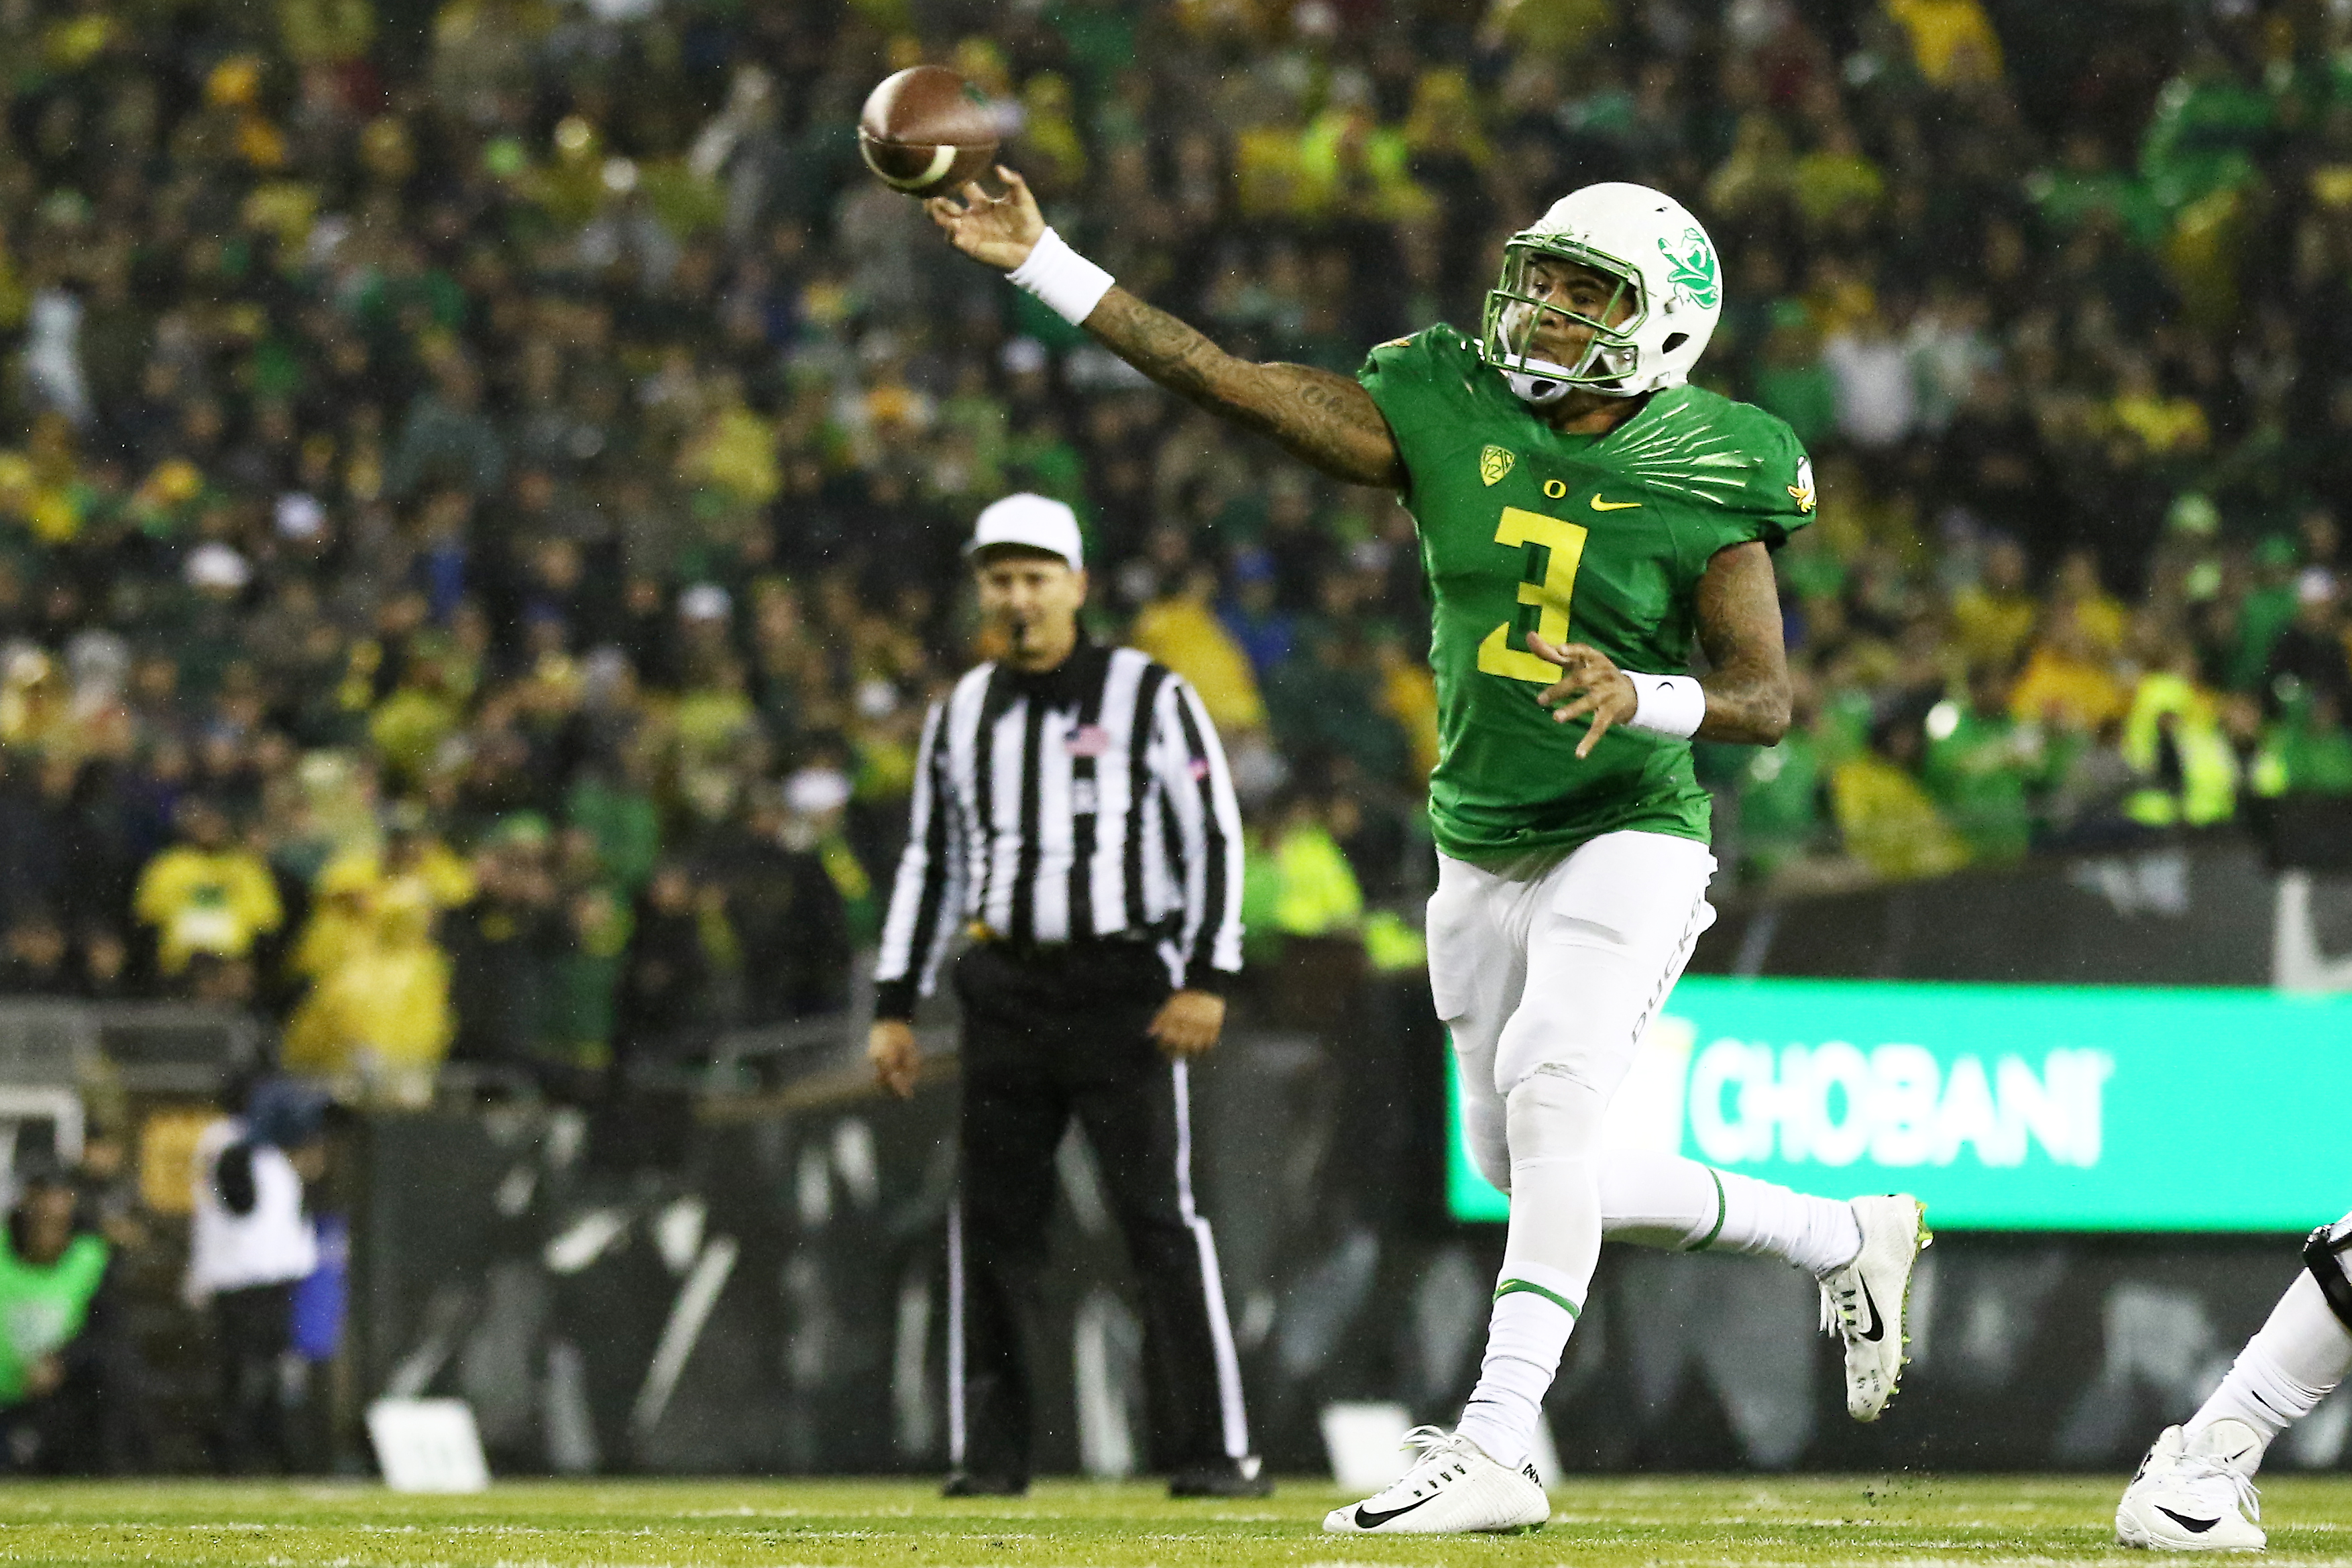 Oregon quarterback Vernon Adams Jr. (3) throws the football during the first half of an NCAA college football game against California, Saturday, Nov. 7, 2015, in Eugene, Ore. (AP Photo/Ryan Kang)